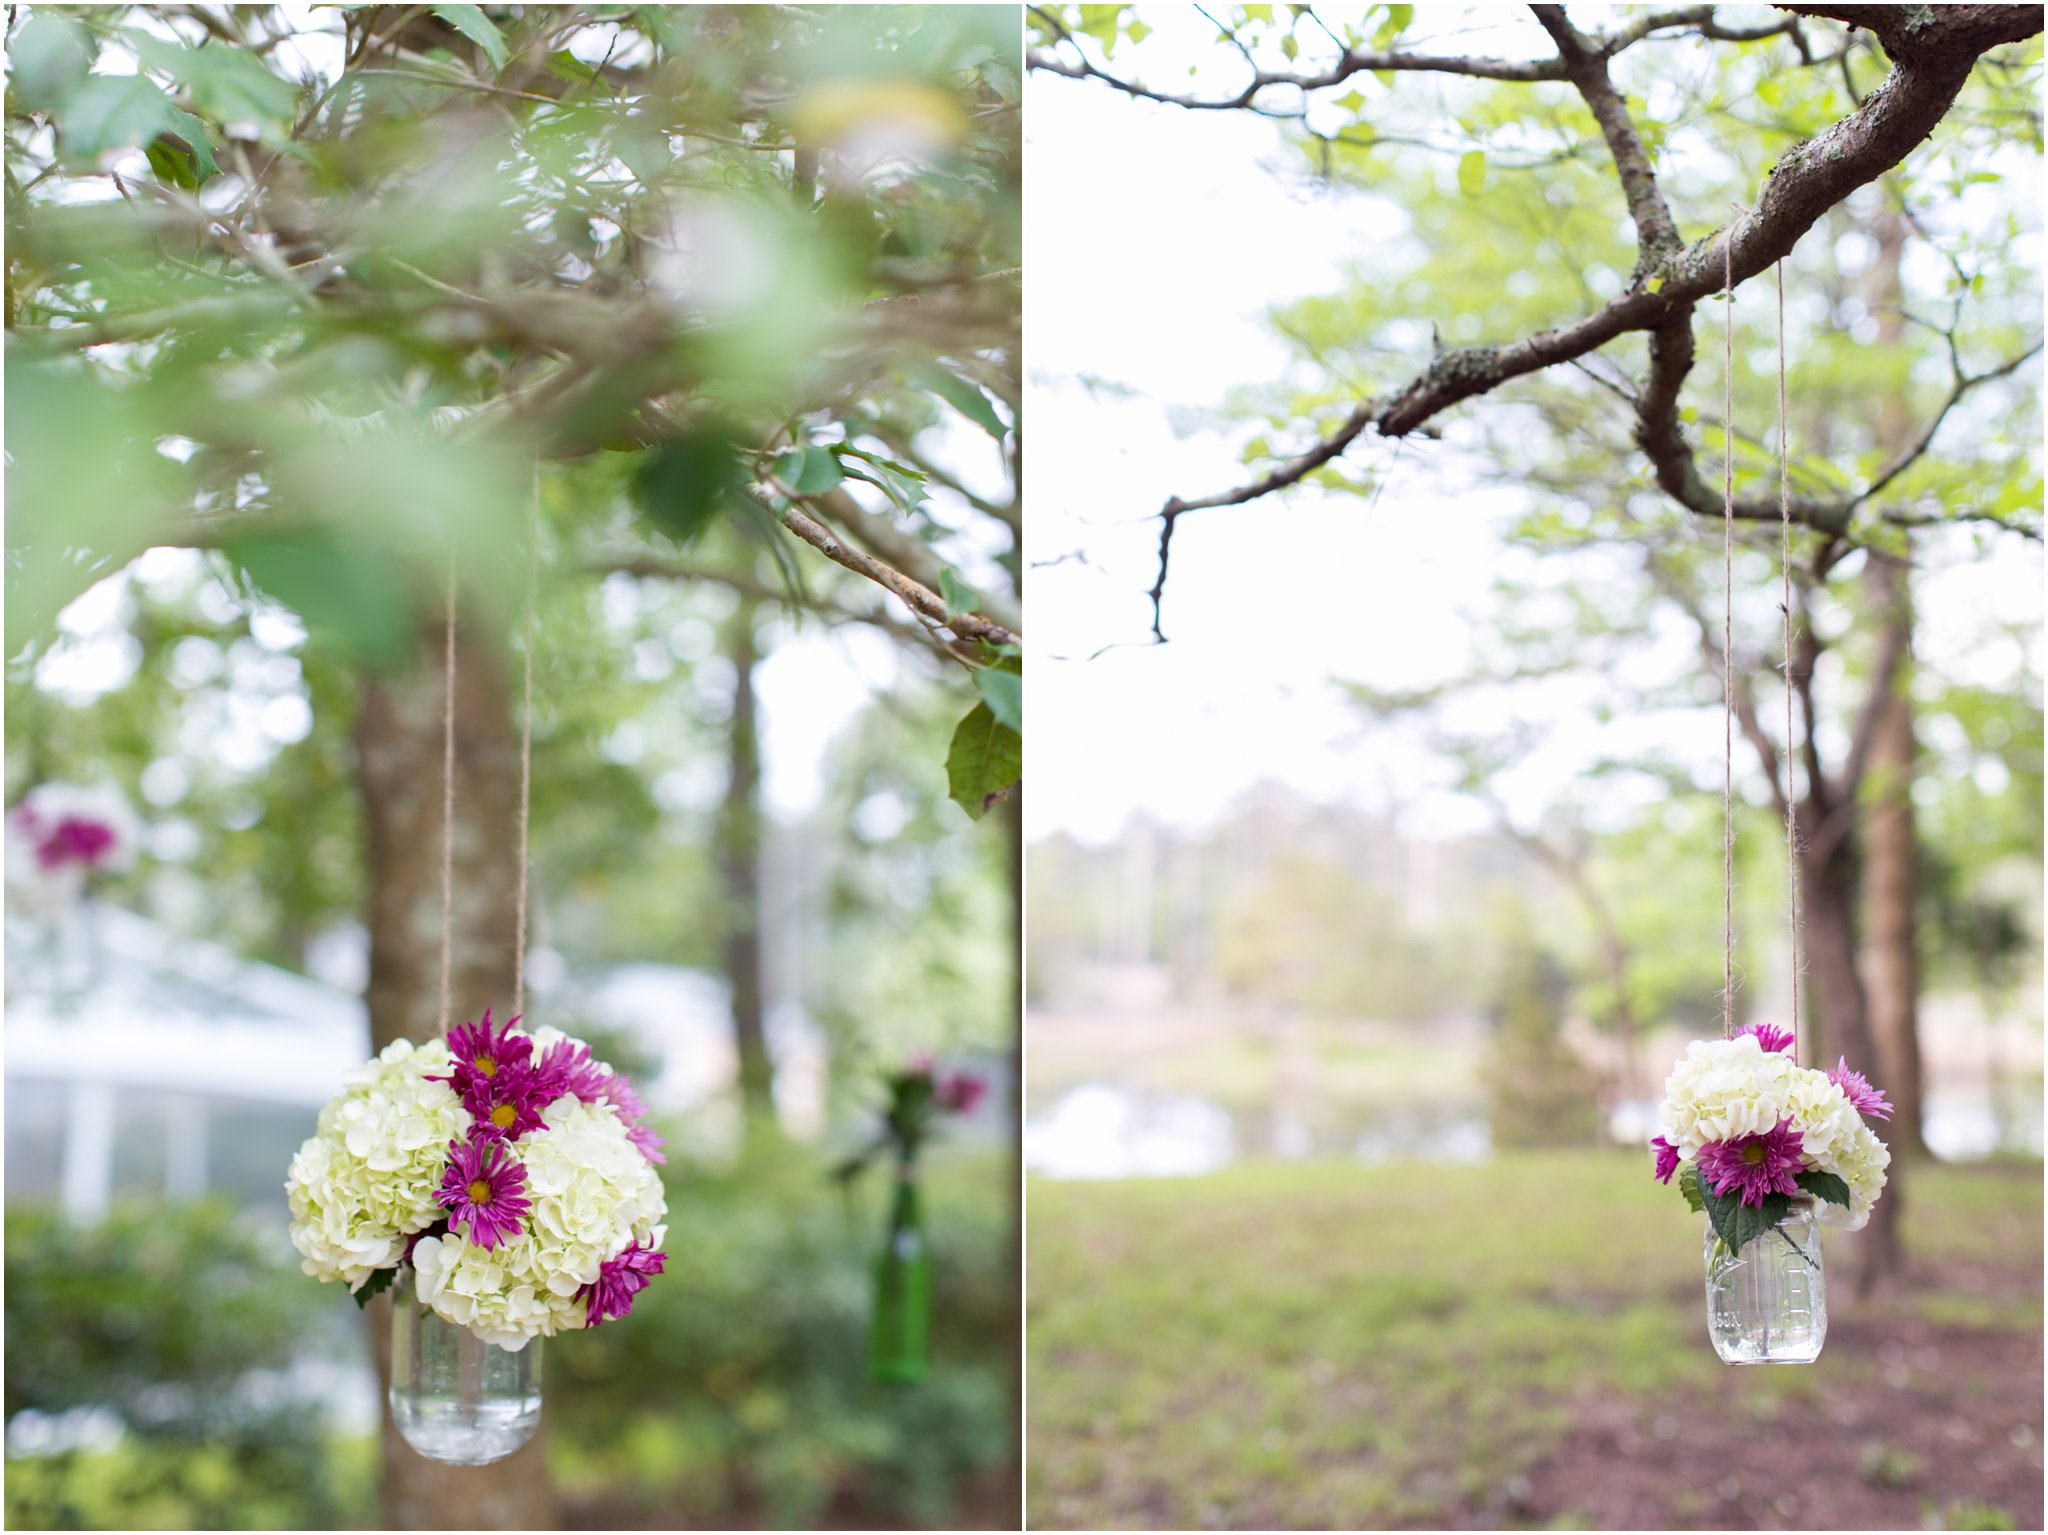 Jessicaryanphotography_virginiabeachwedding_virginiaweddingphotographer_weddingdetails_weddingjewelry_weddingdecorations_0436